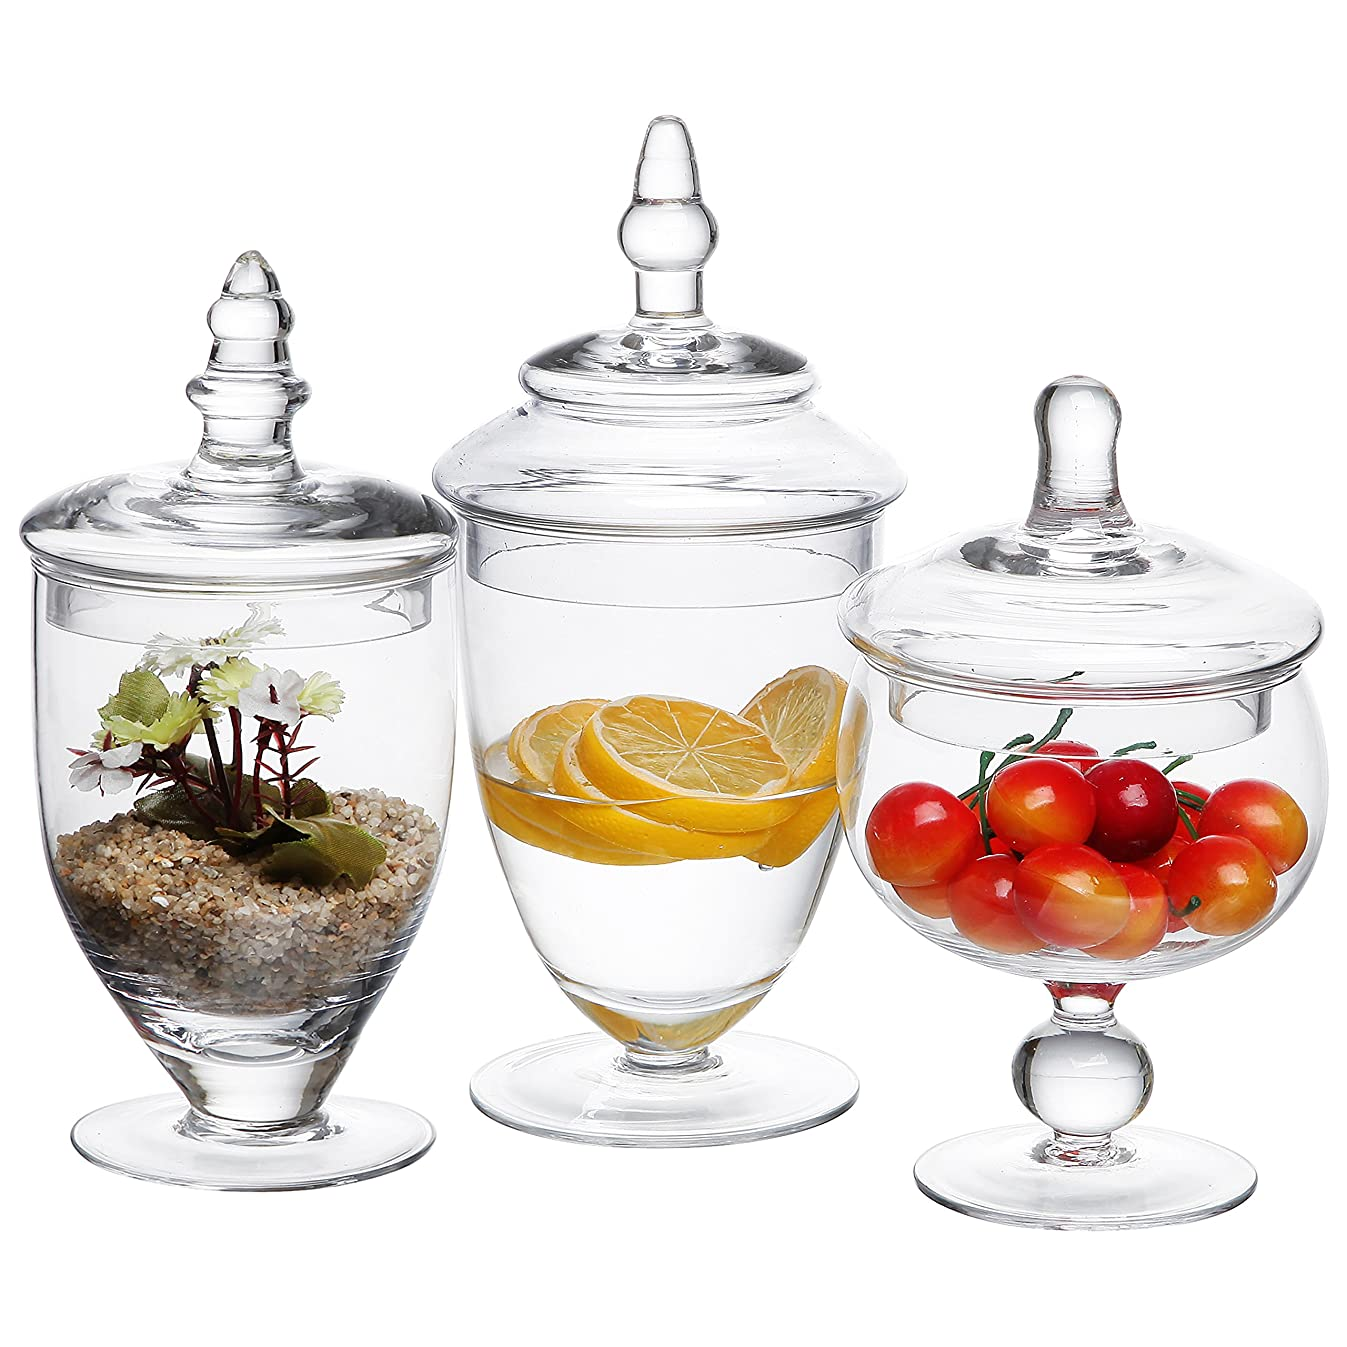 MyGift Small Clear Glass Apothecary Jars, Wedding Centerpiece, Candy Storage Bottles - 3 Piece